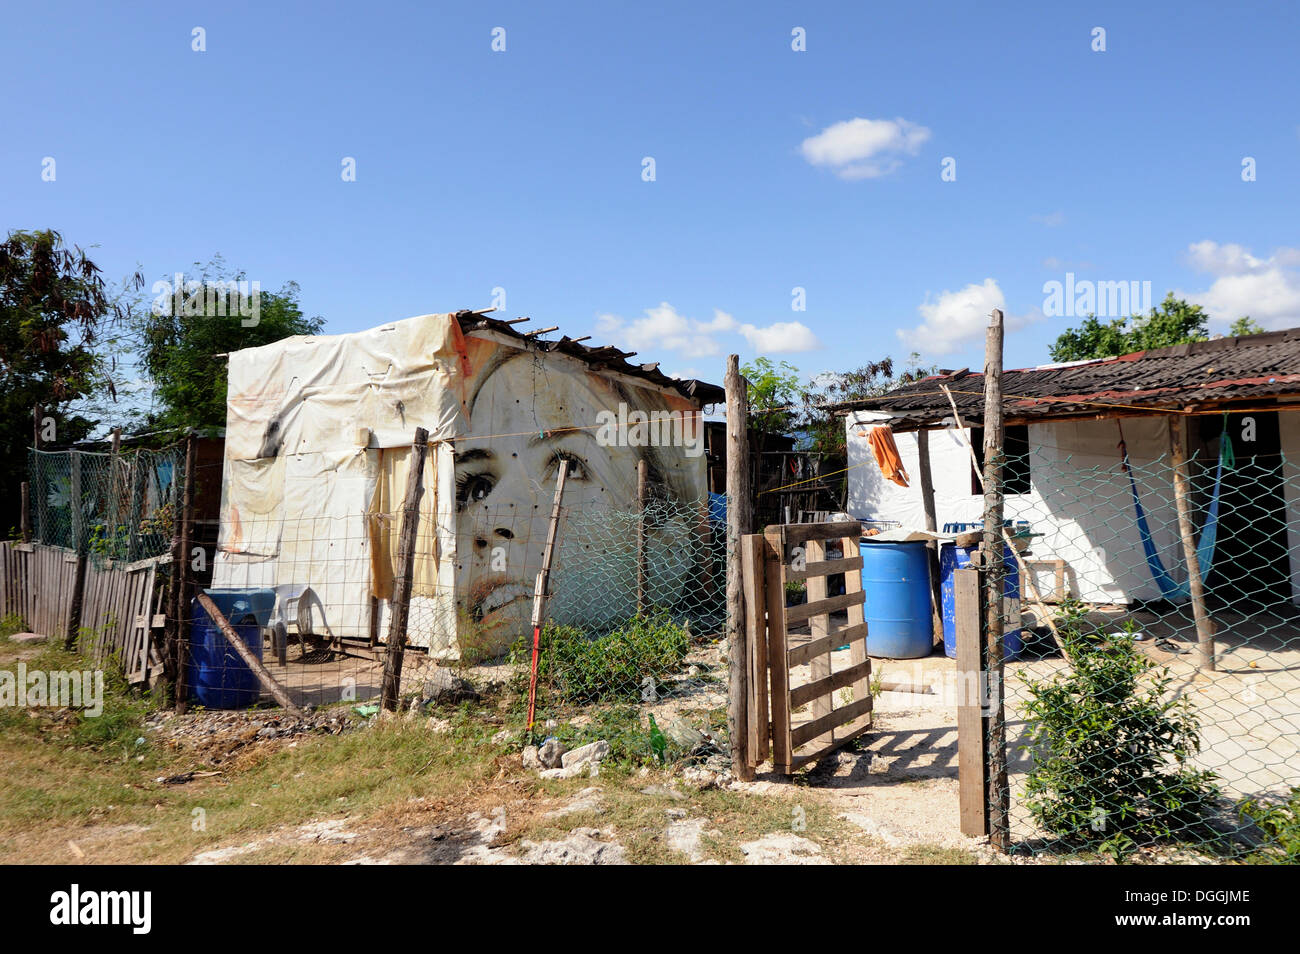 Billboard with the face of a female model serves as an outer wall of a humble cottage in a slum, Cancun, Yucatan Peninsula - Stock Image